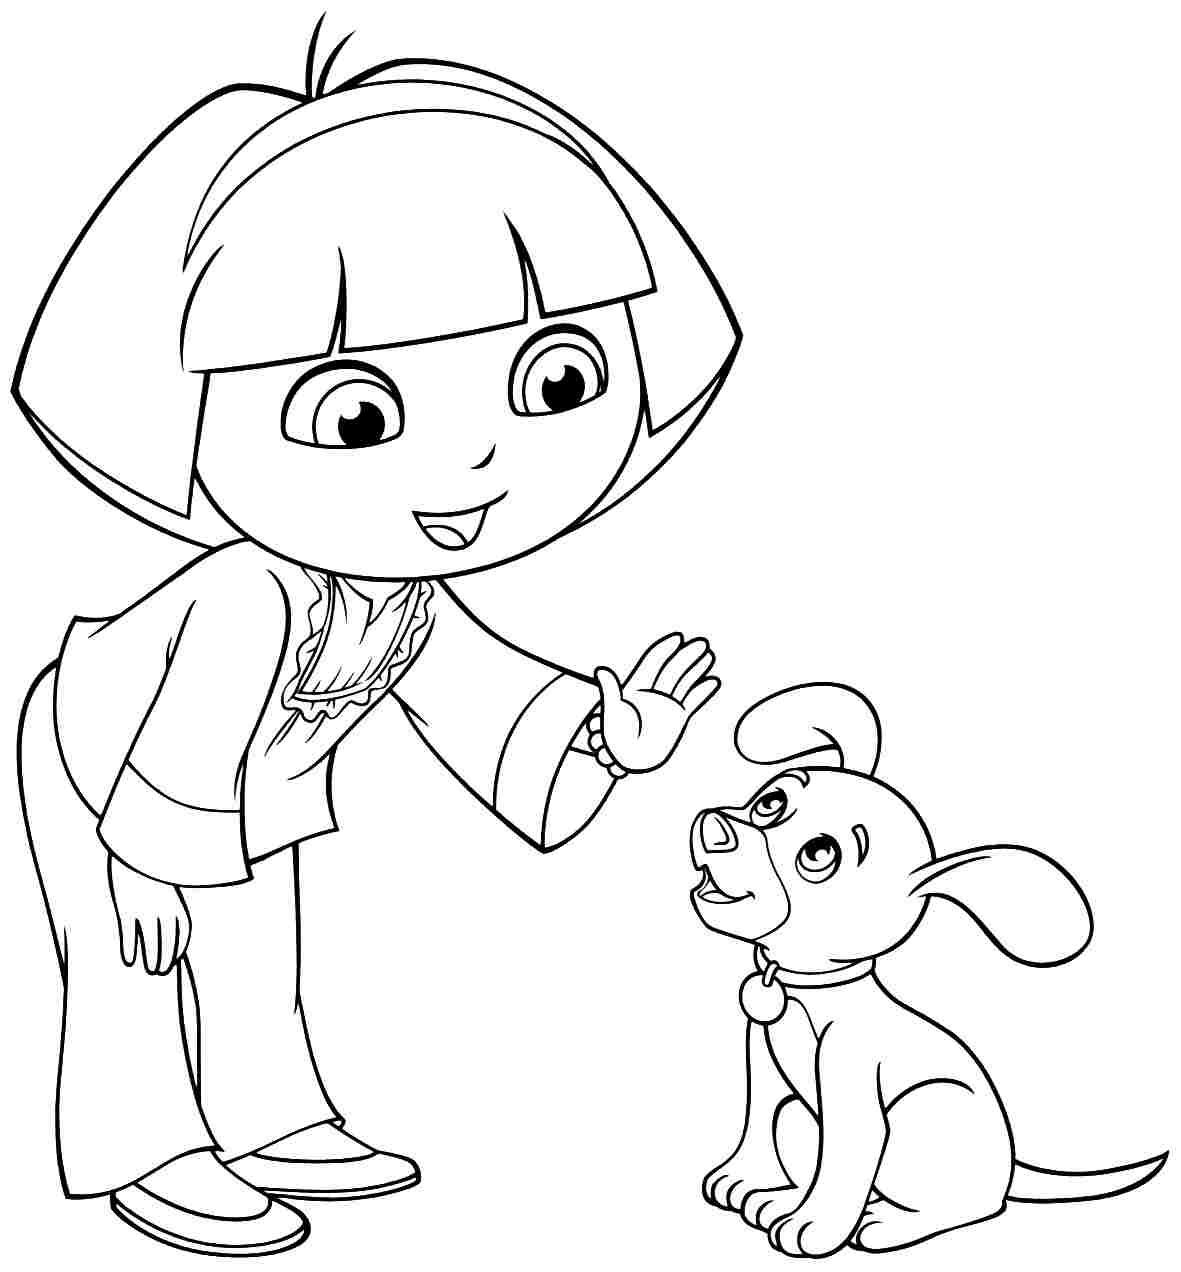 dora free coloring pages coloring dora coloring pages free pages coloring dora